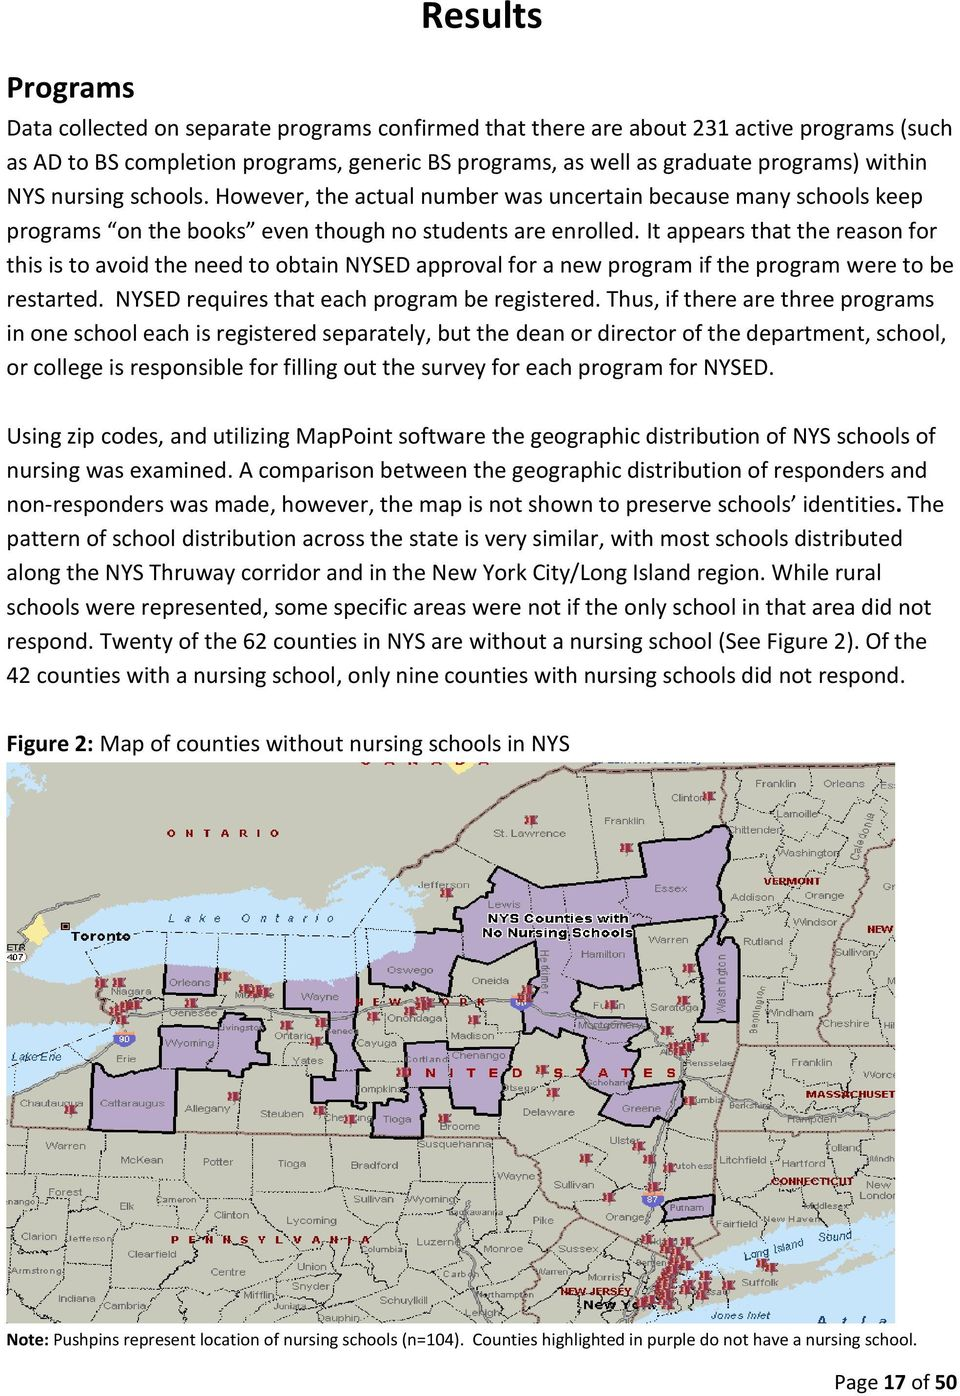 It appears that the reason for this is to avoid the need to obtain NYSED approval for a new program if the program were to be restarted. NYSED requires that each program be registered.